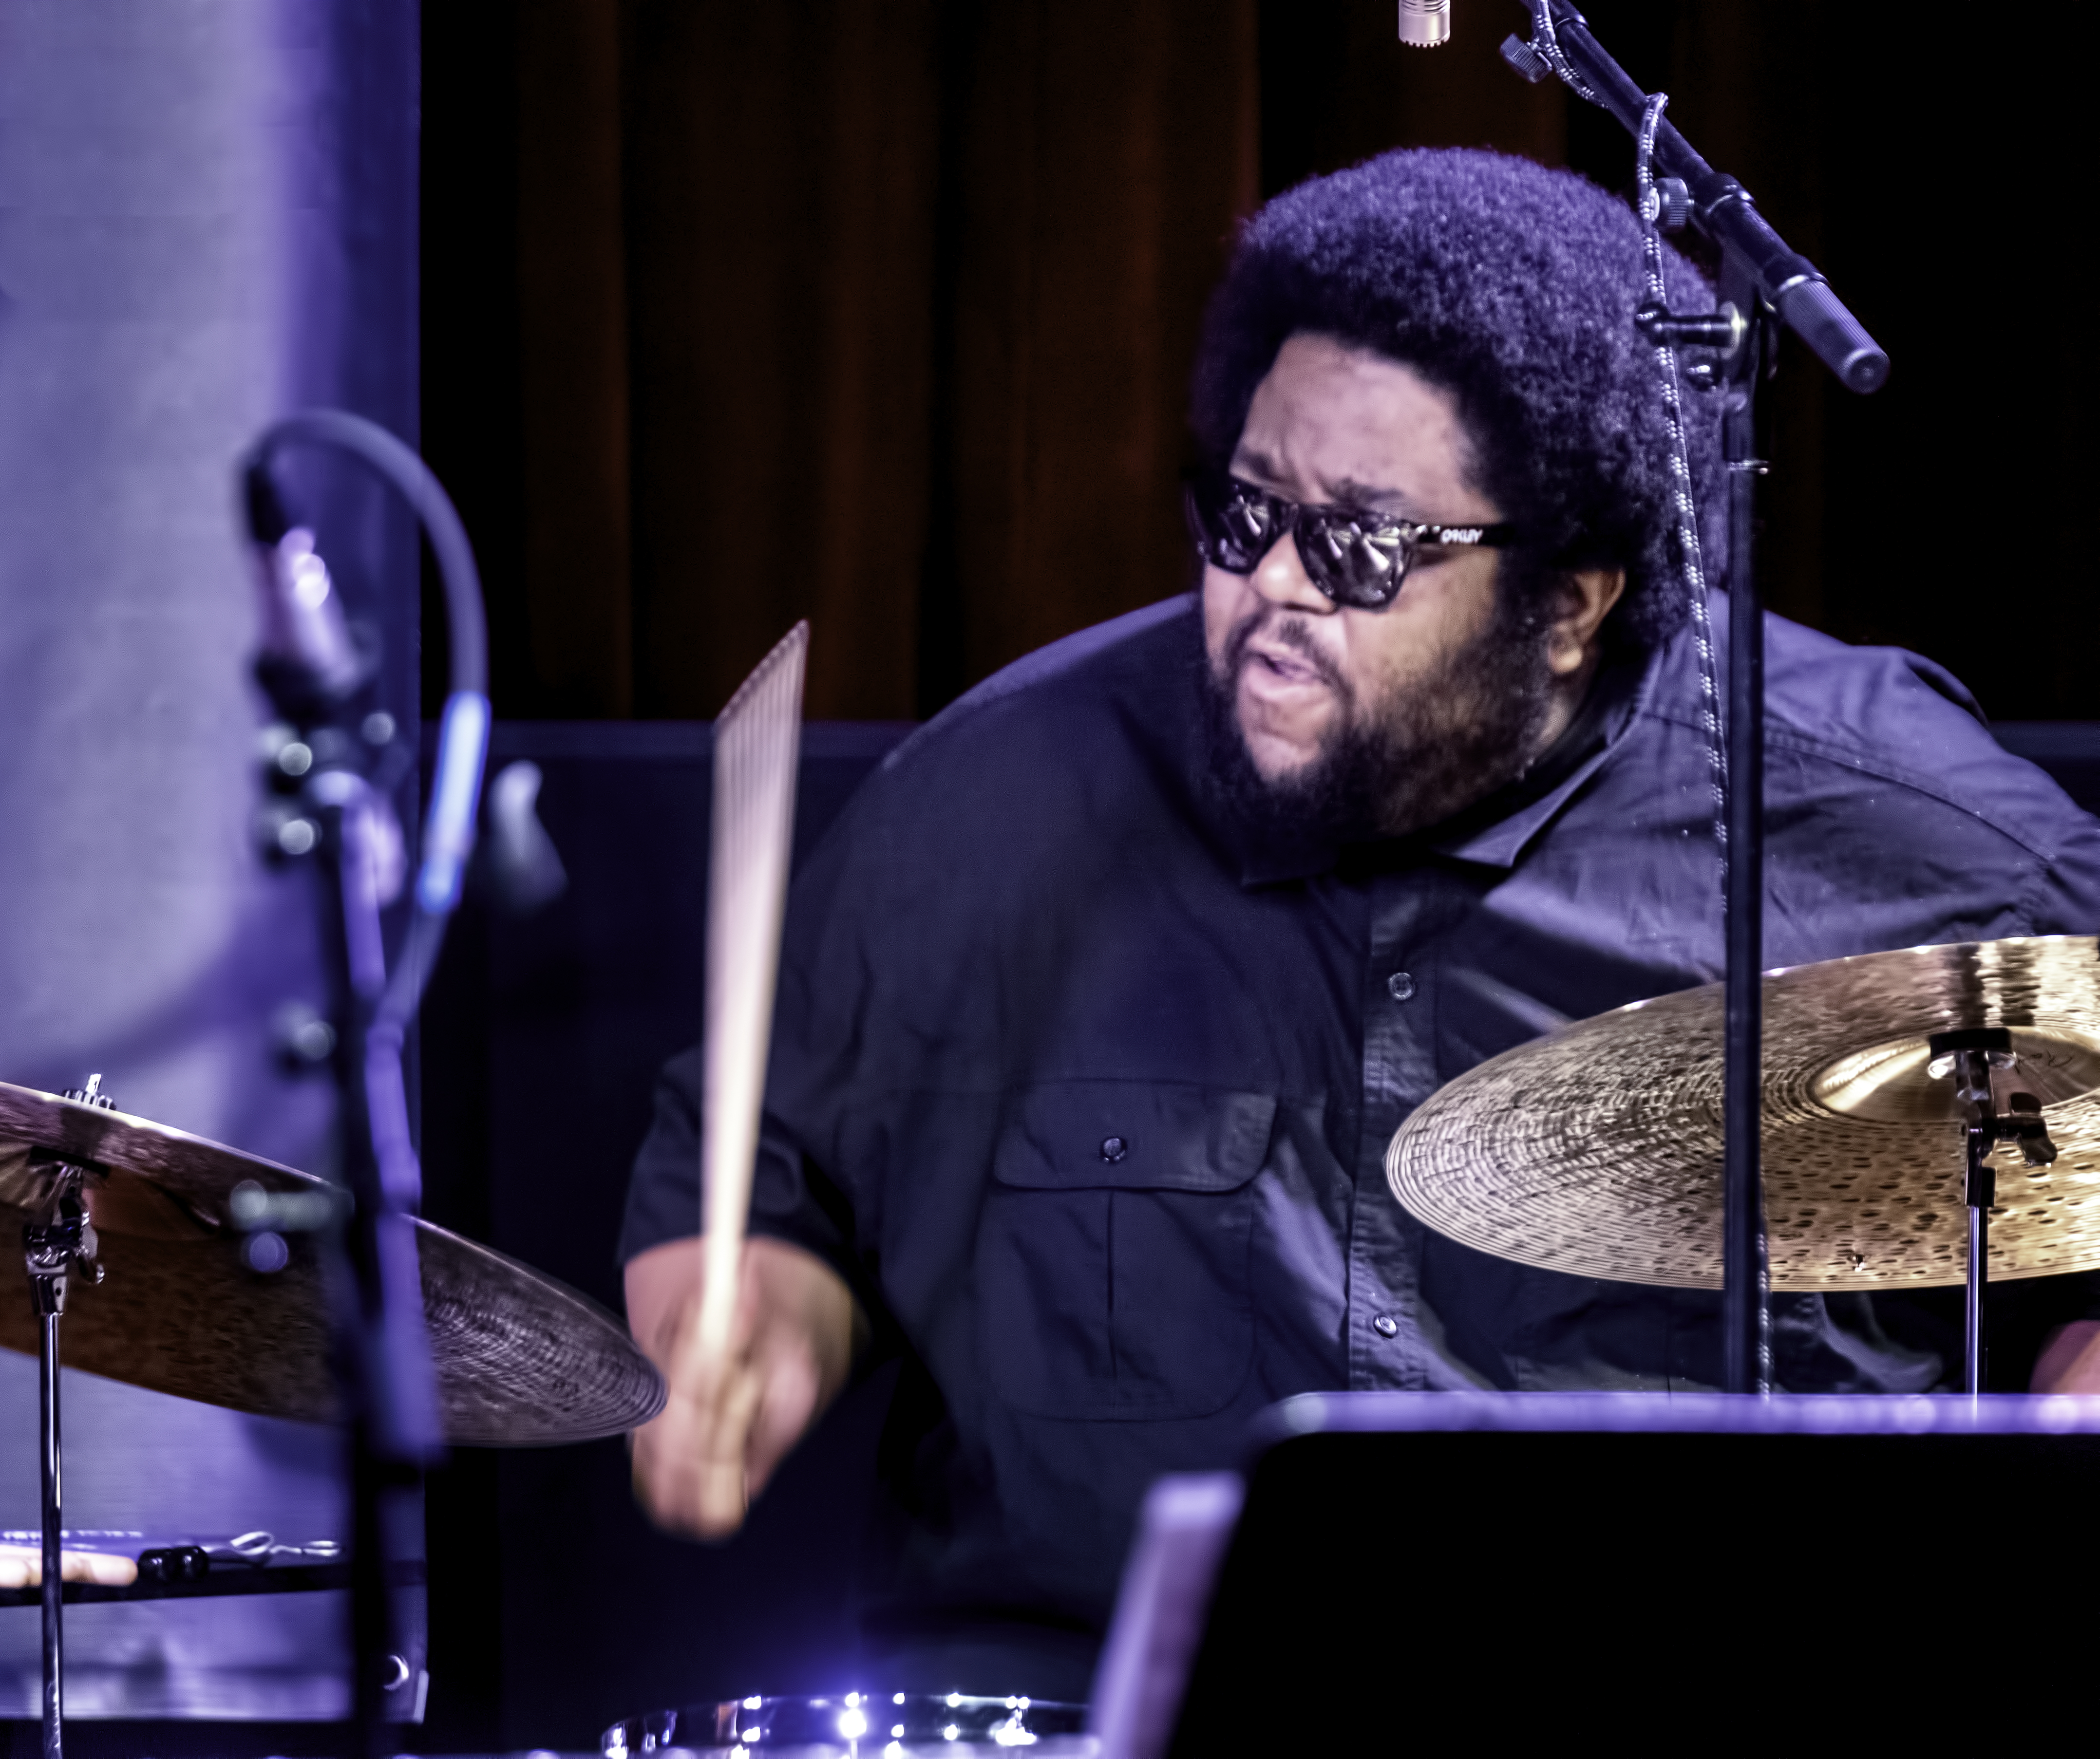 Tyshawn Sorey with Sextet at the NYC Jazz Gallery